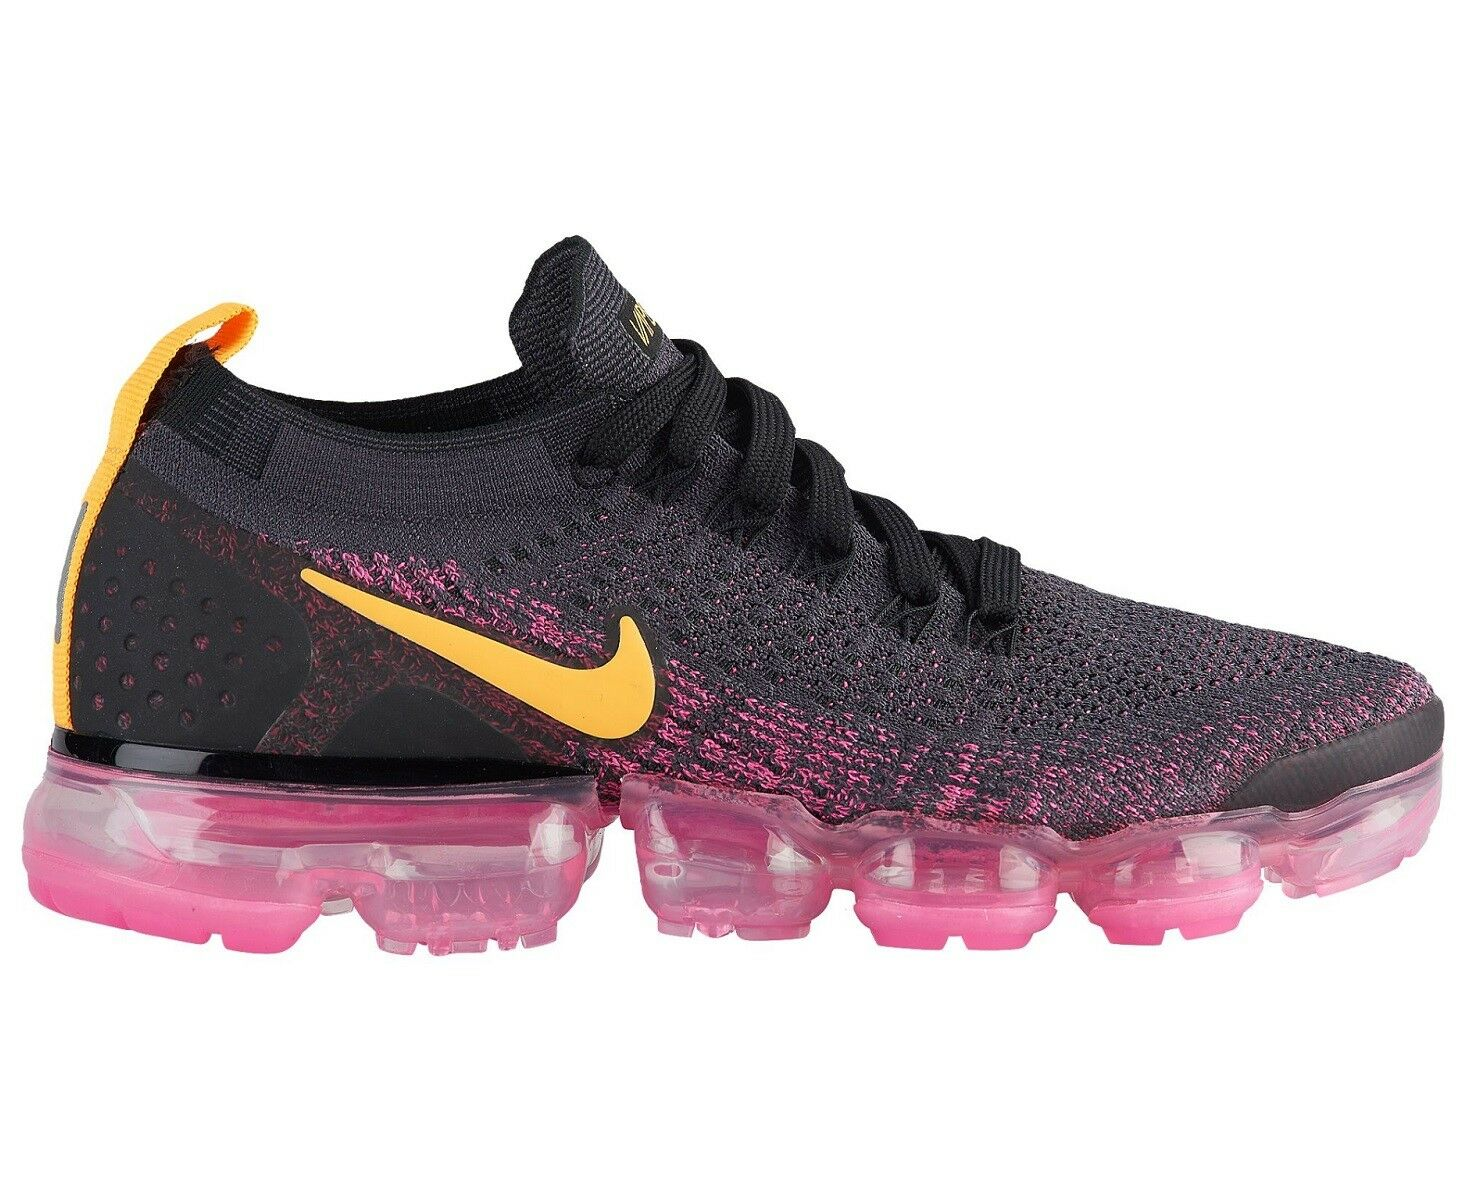 Nike Air Vapormax Flyknit 2 Womens 942843-008 Grey Pink Running shoes Size 6